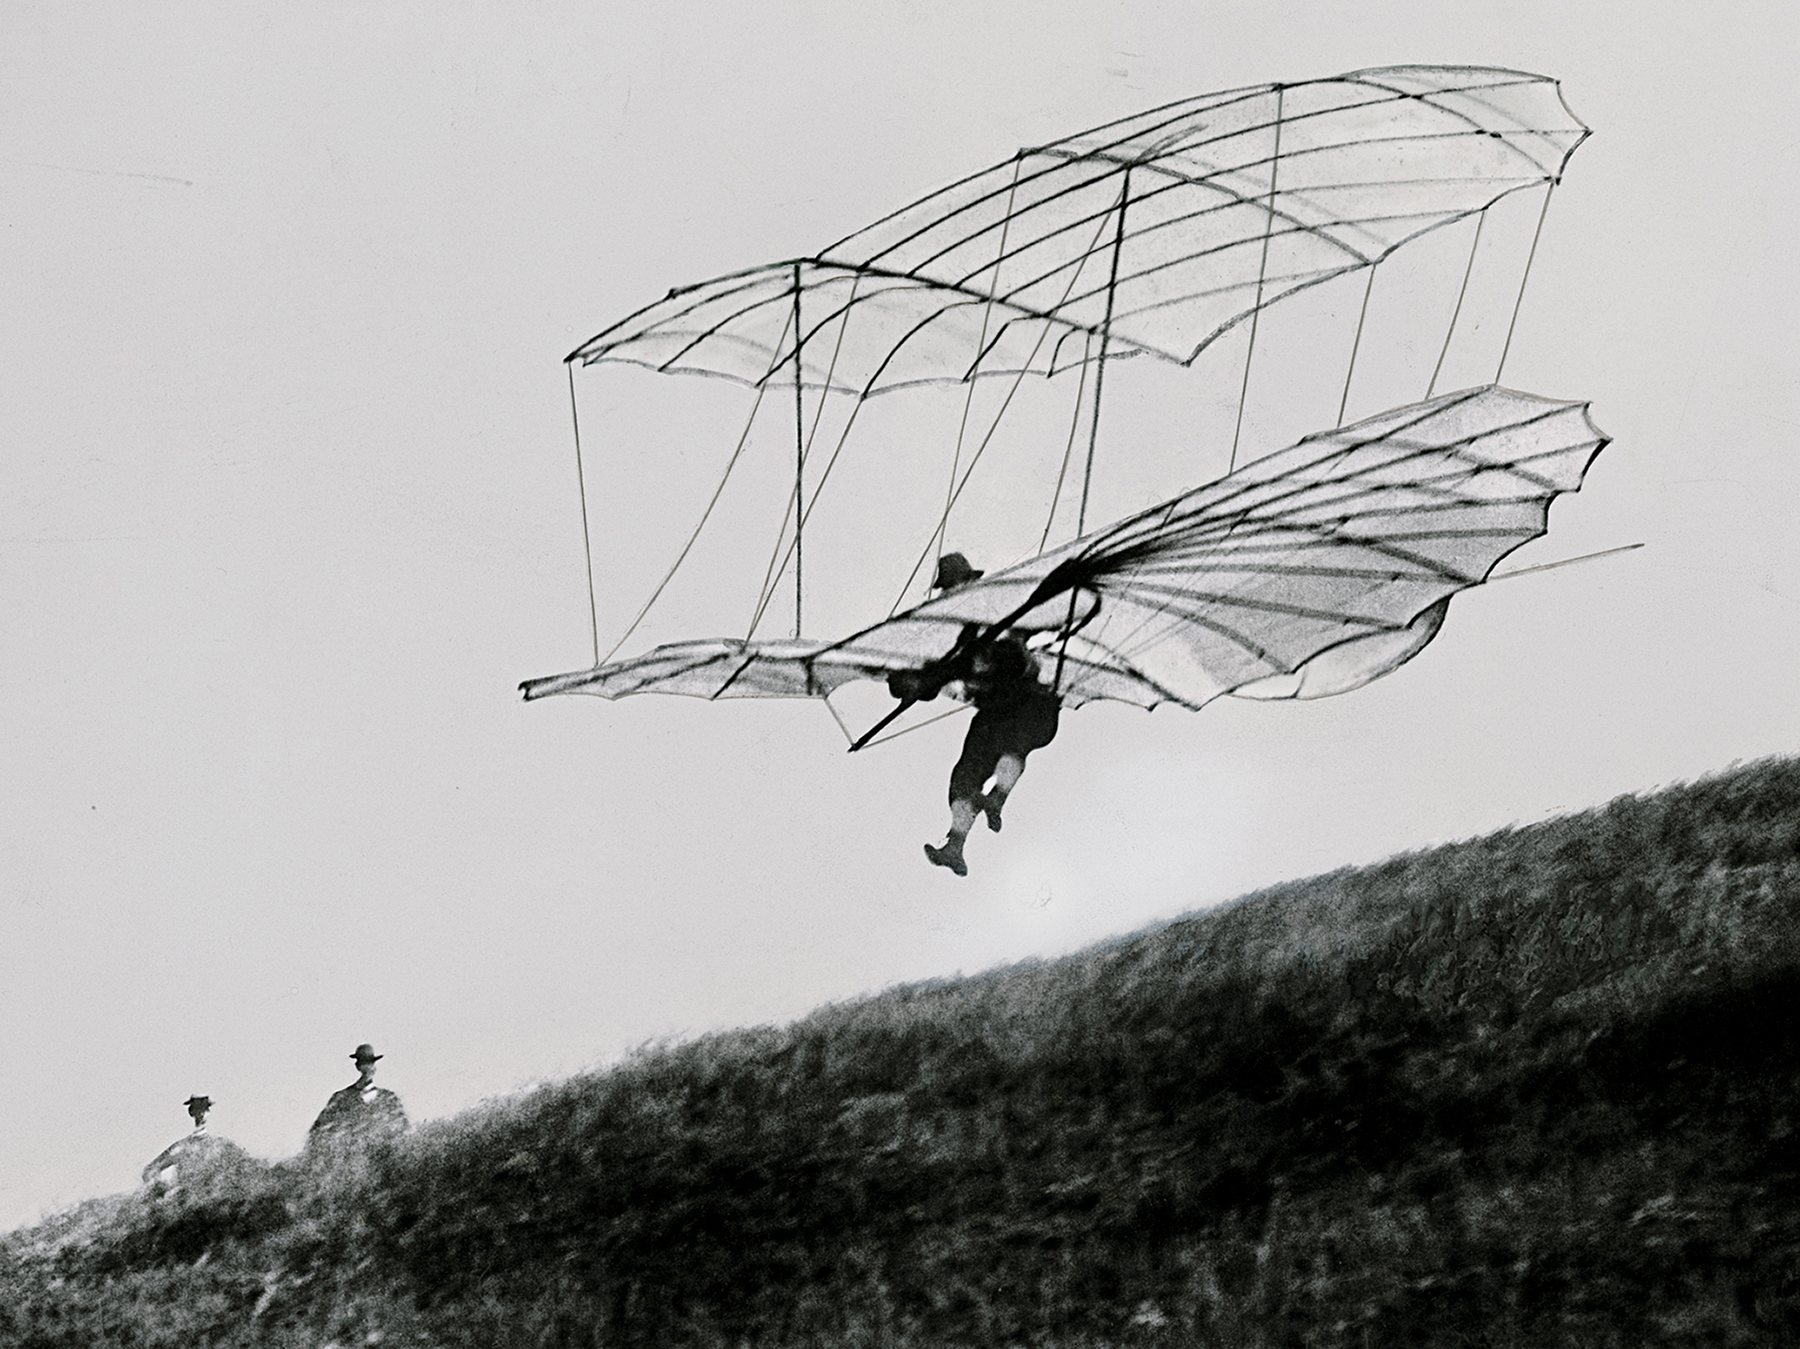 NationalGeographic 11918. OTTO LILIENTHAL